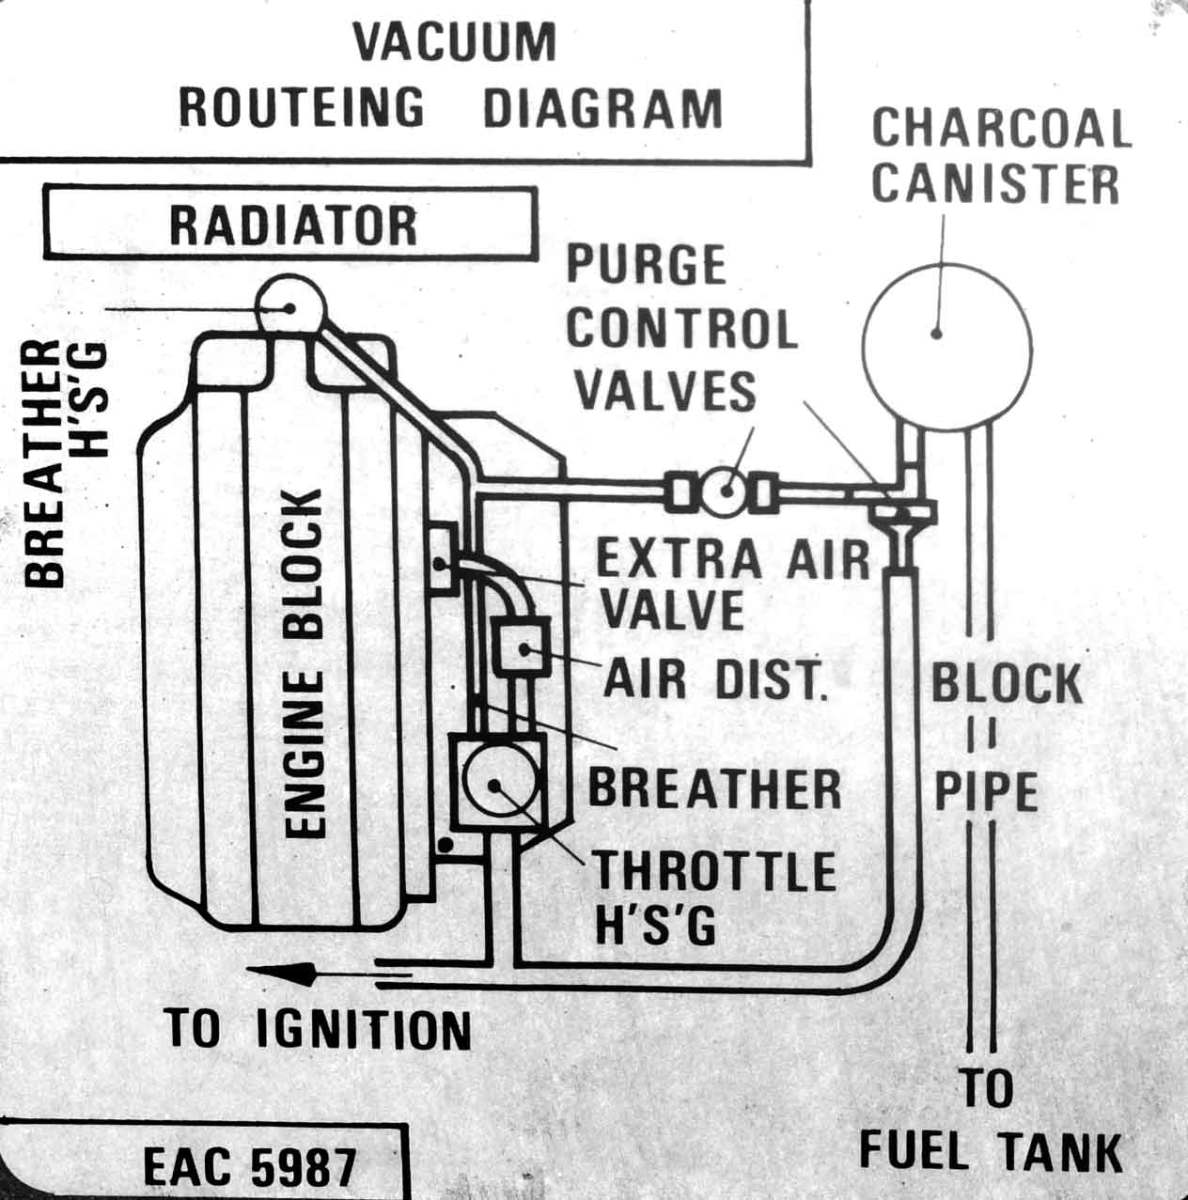 how to find and fix a vacuum leak axleaddict rh axleaddict com Chevy 350 Vacuum Diagram Chevy 350 Vacuum Diagram